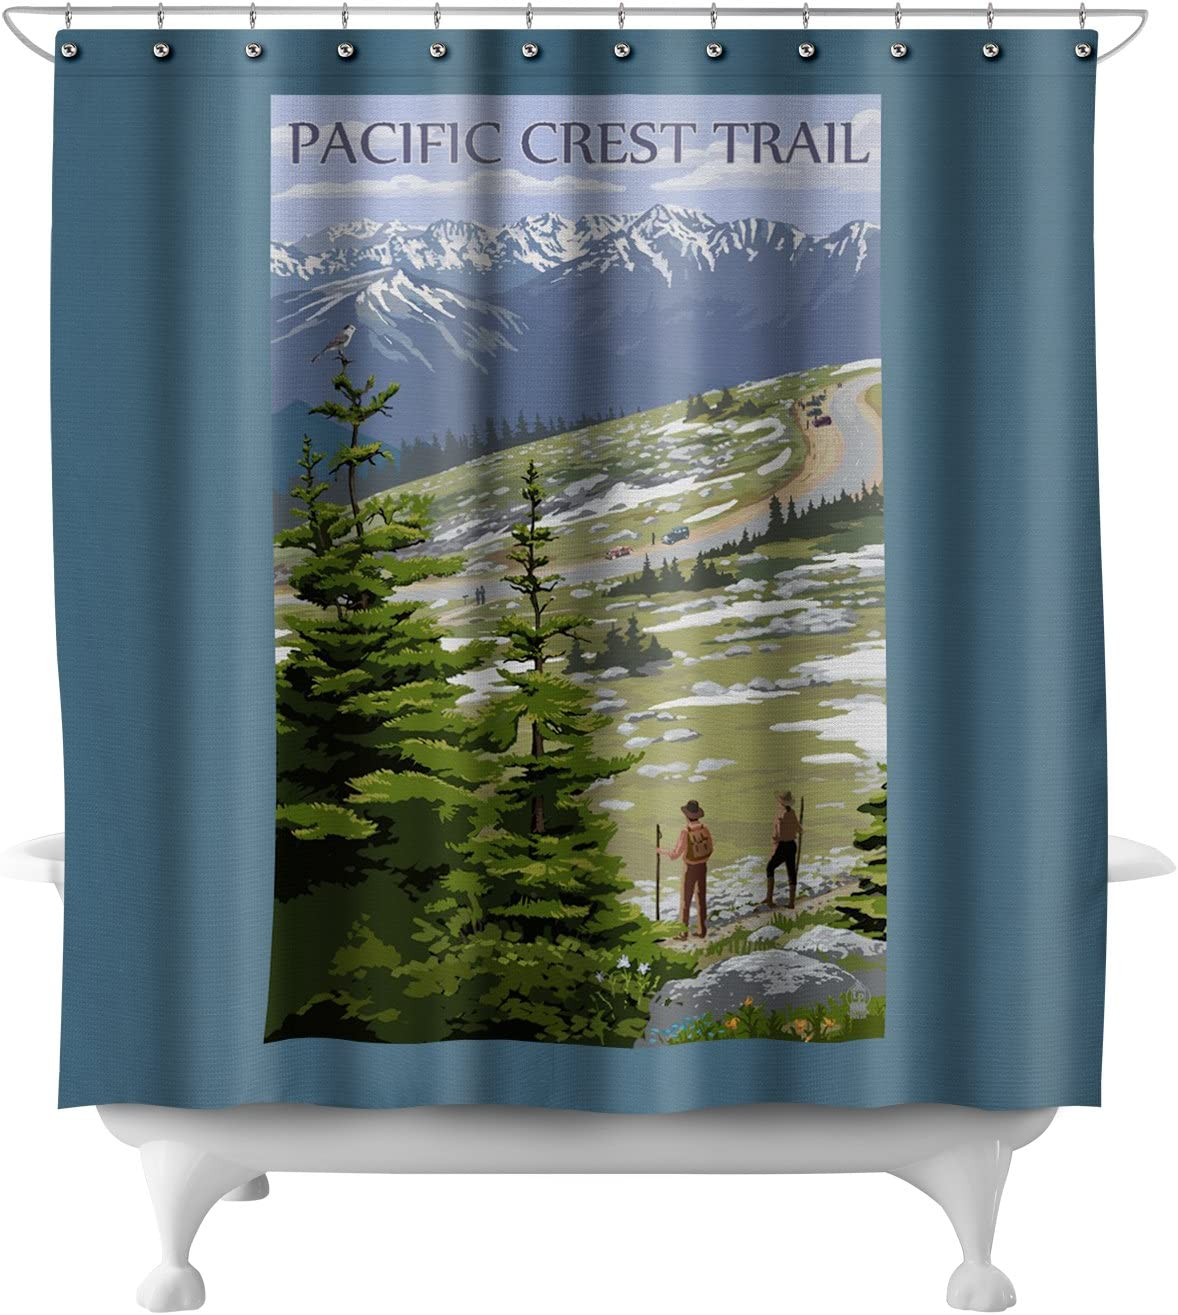 Pacific Crest Trail and Hikers (71x74 Polyester Shower Curtain)